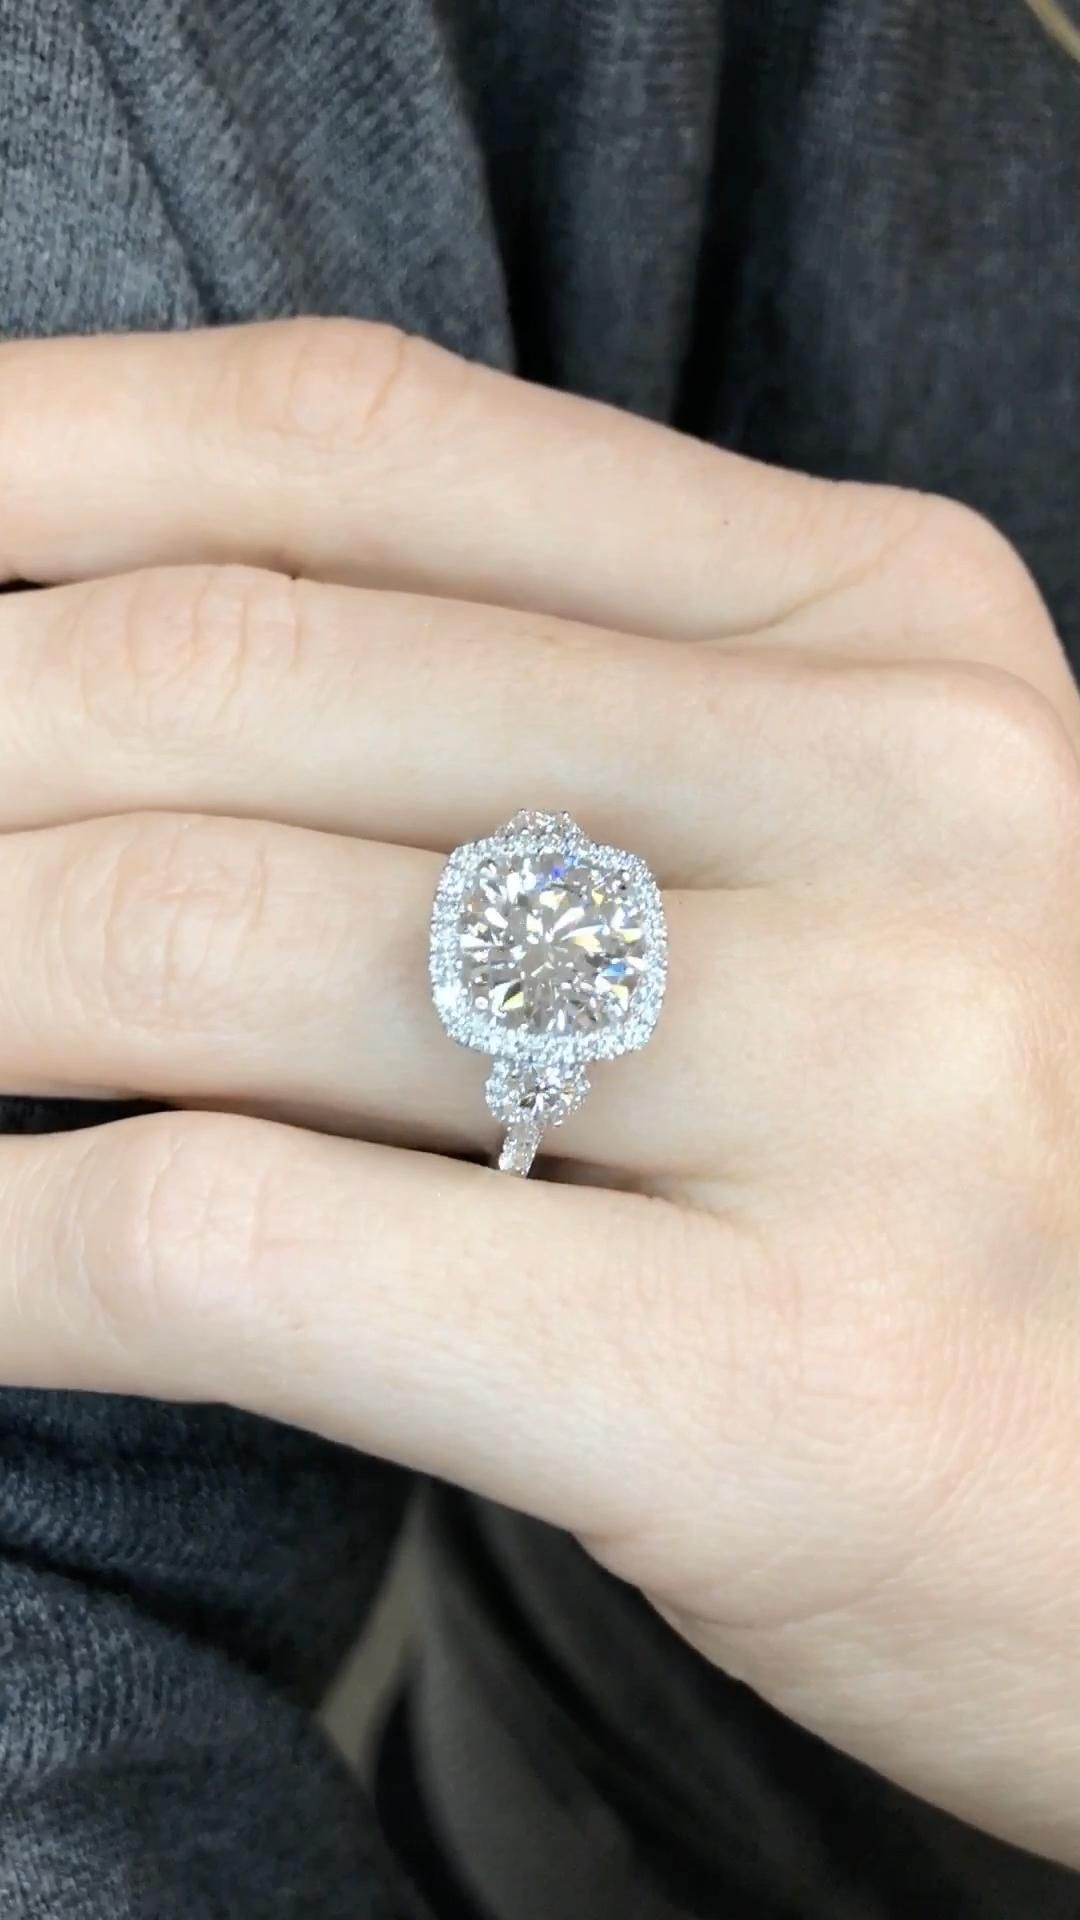 A unique engagement ring custom designed for a one of a kind love. Features a brilliant round cut diamond adorned with a delicate halo style and side stones, handmade in 18 karat white gold by Ascot Diamonds.    #engagementringsideas #engagementringsunique #ascotdiamonds #diamondengagementrings